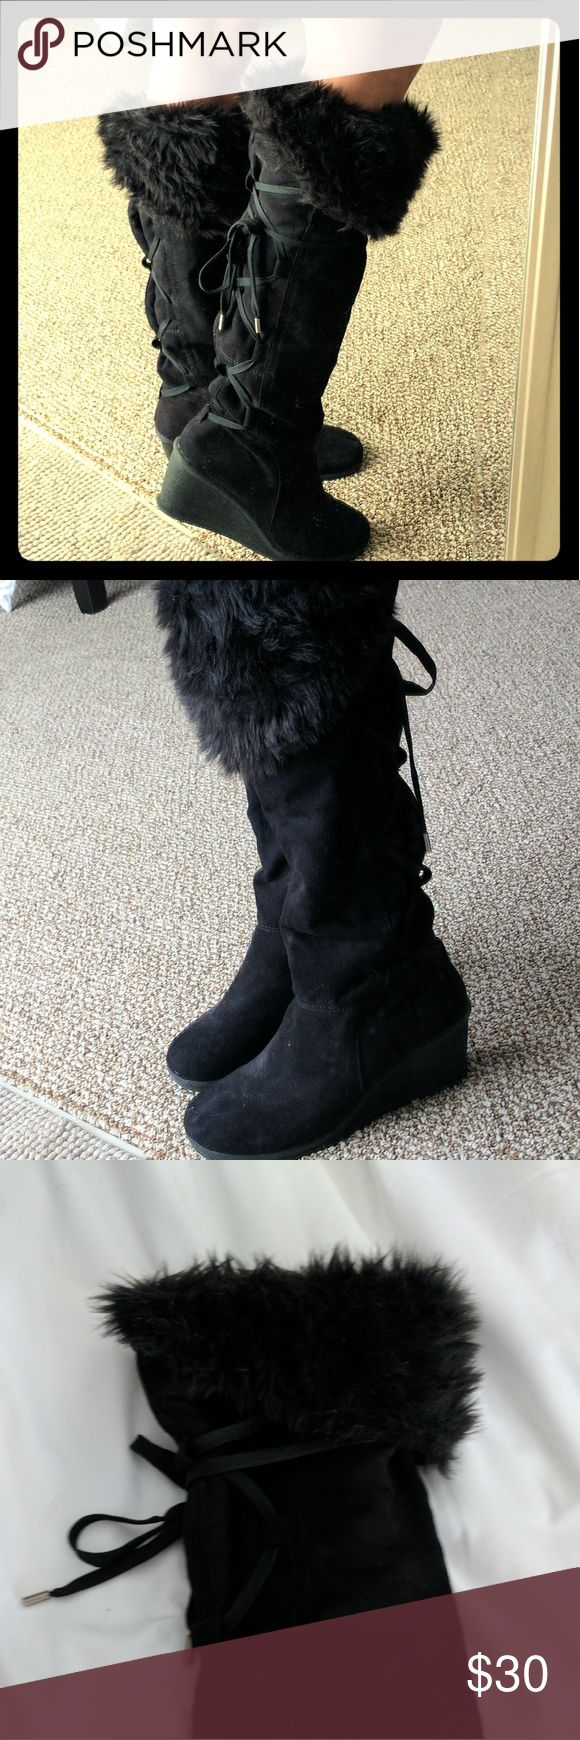 Wedge boots Super cute black wedge boots. Theses boots are the best of both worlds with cute and comfort. They have a furry top cuff and lace up the back. They are slip on boots, there is no zipper. Only worn a few times so they are still in great condition. Decree Shoes Heeled Boots